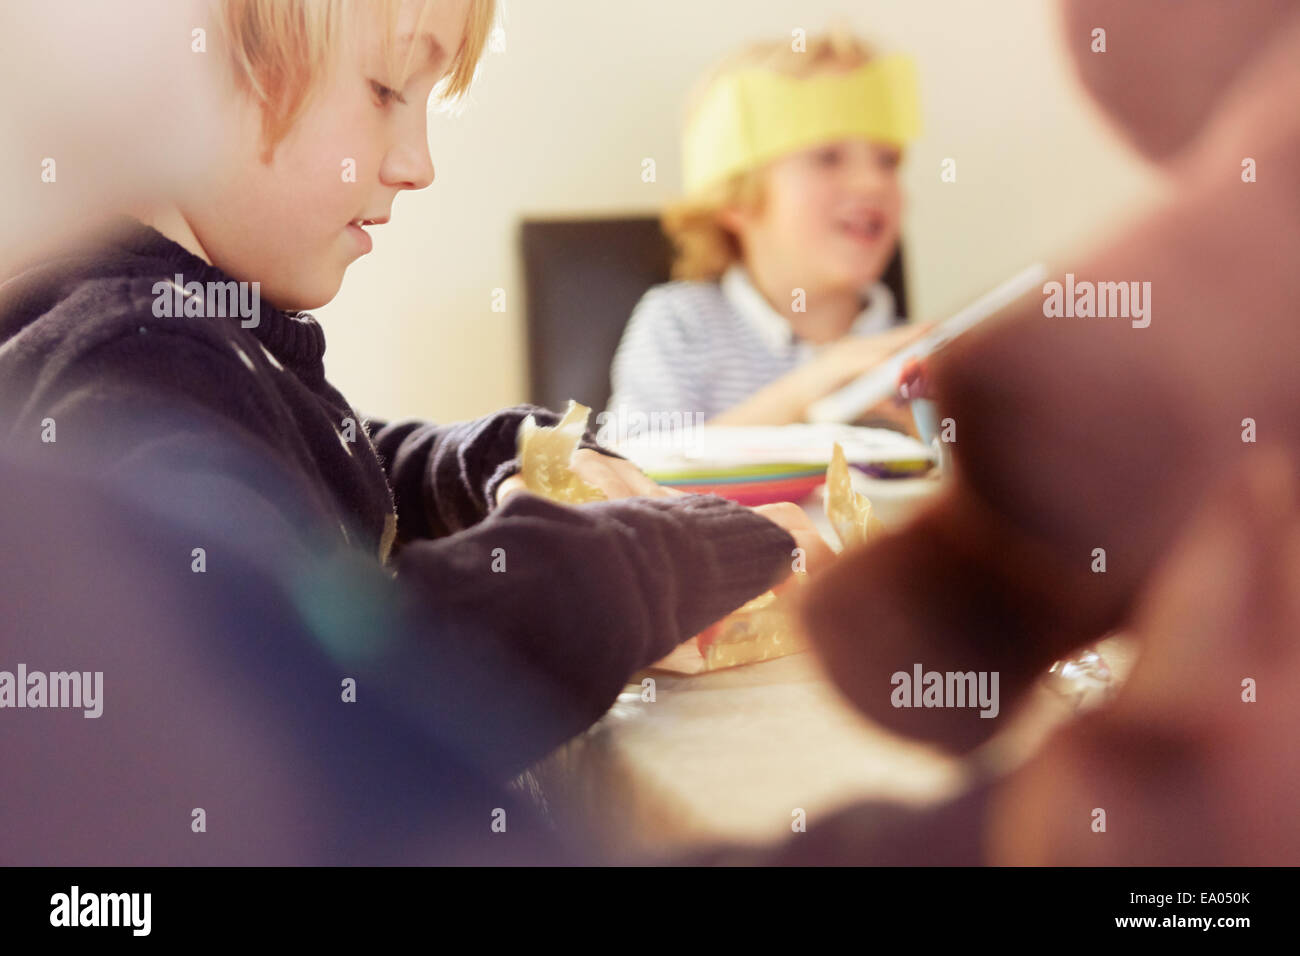 Young boy opening up Christmas present at table - Stock Image